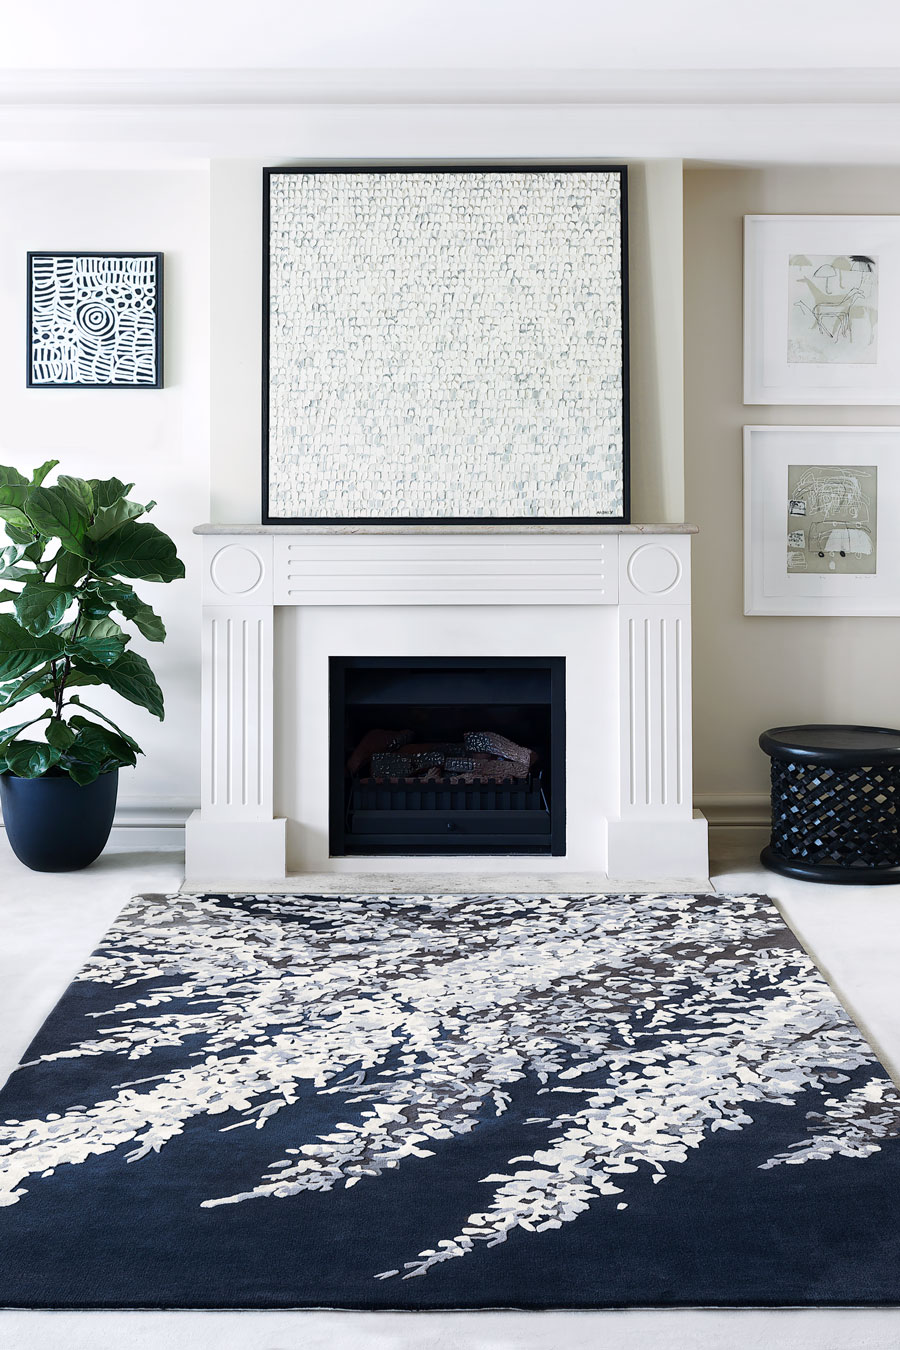 location living room shot of blossom dance rug by felicia aroney whote floral on navy background